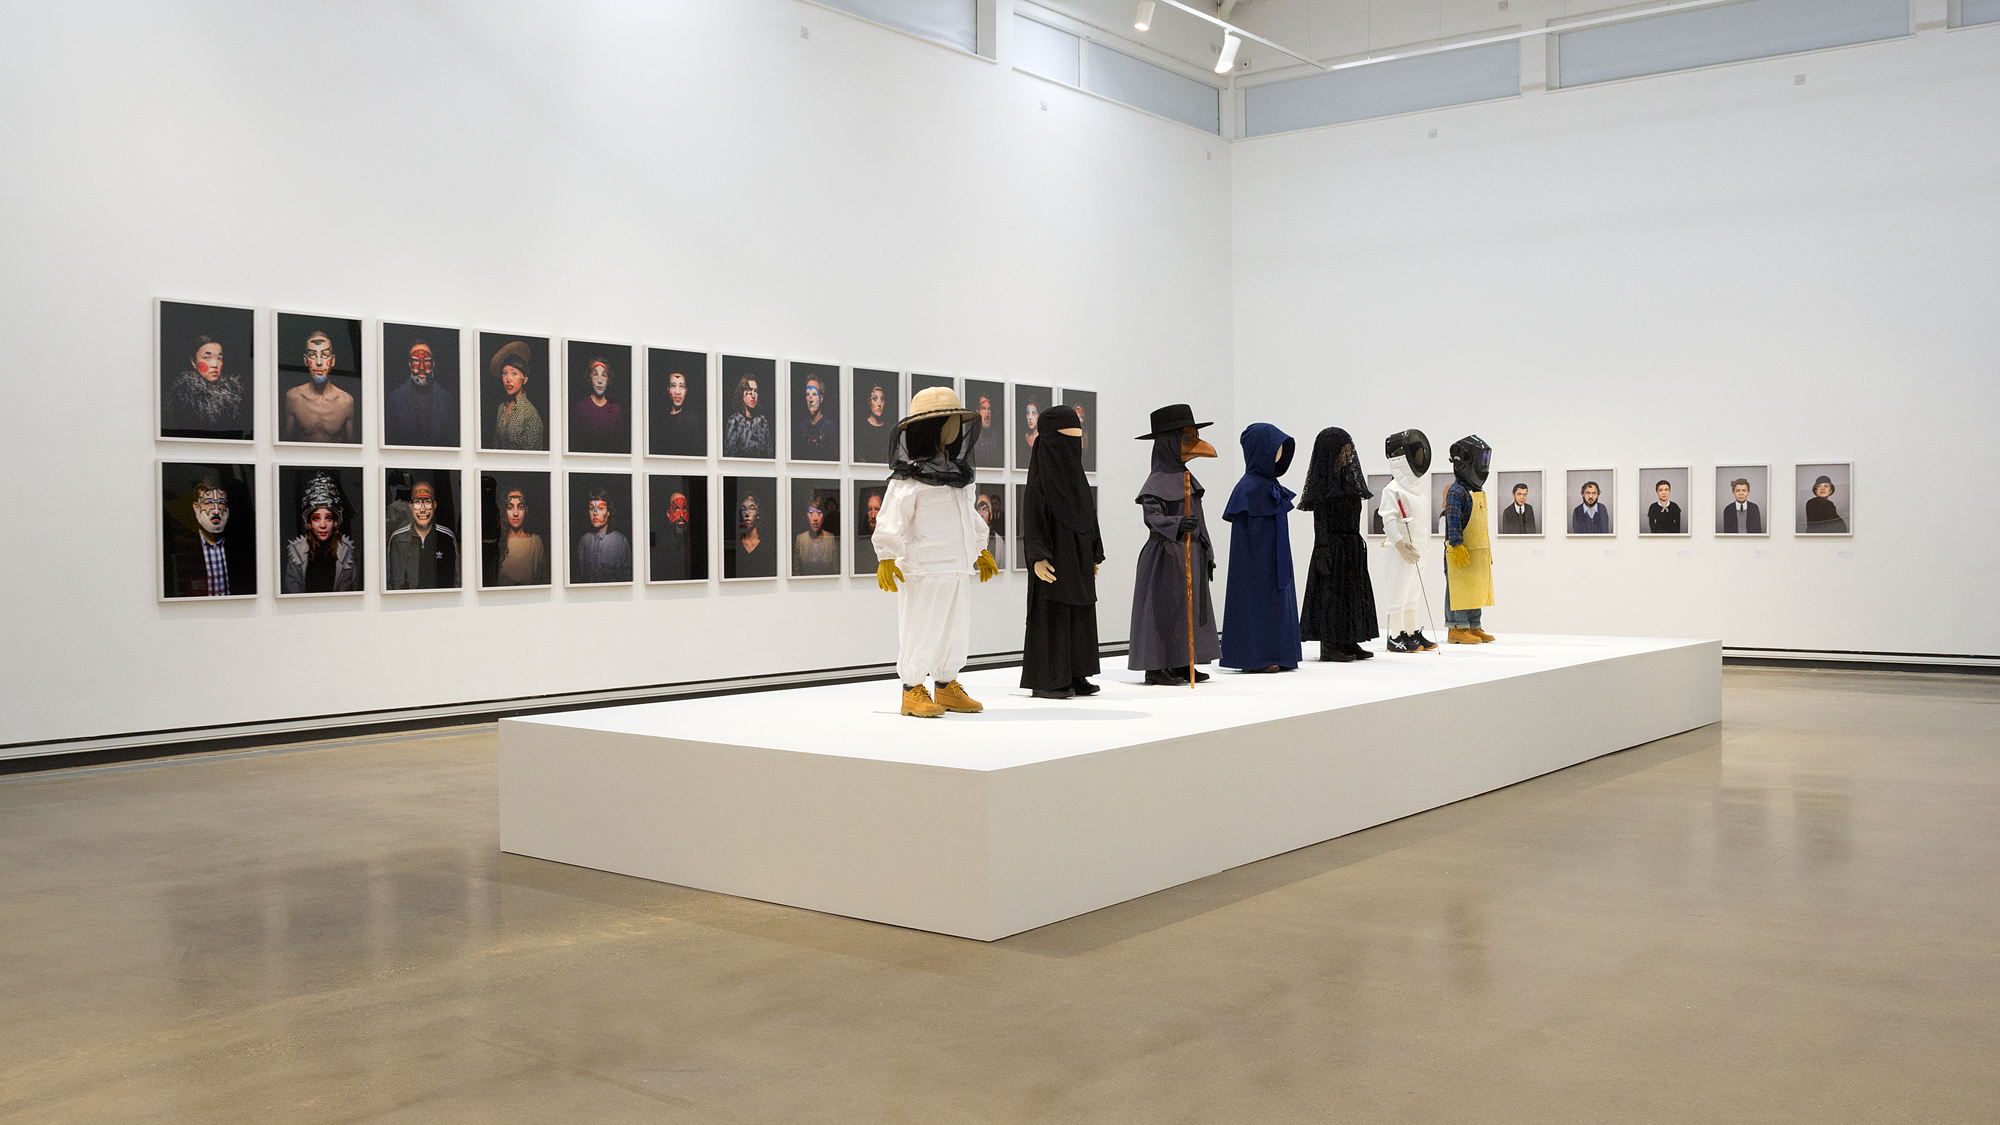 Installation view of Beauty (2017), Uniforms (2015), and Recluse (2017)